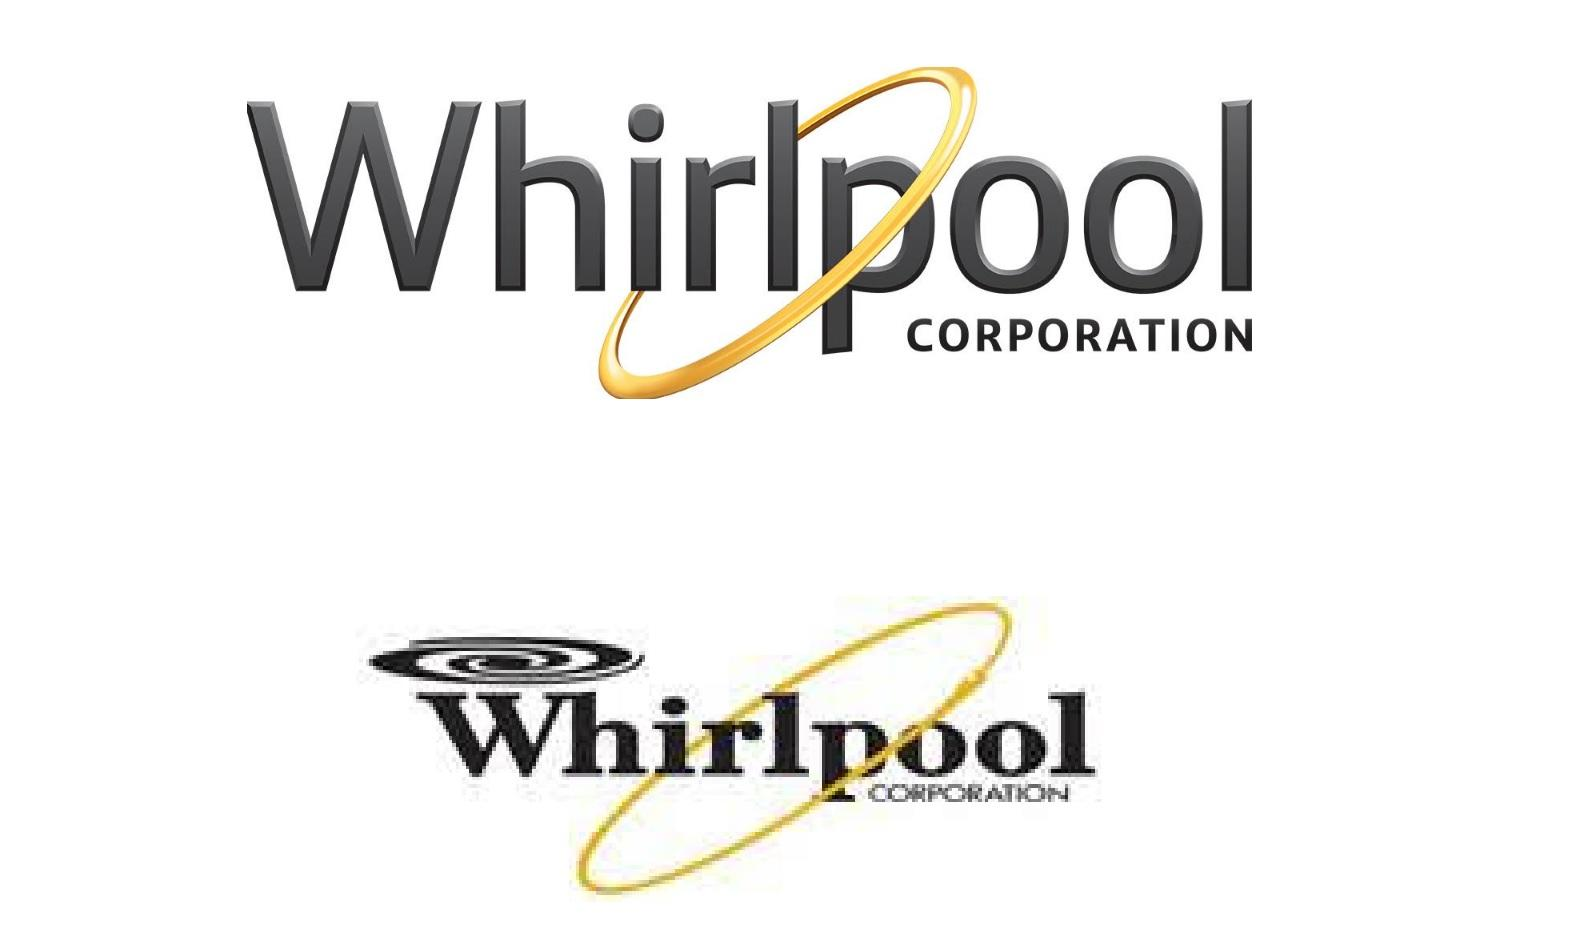 Whirlpool Logo - whirlpool: Whirlpool introduces a brand new logo. Can you spot the ...